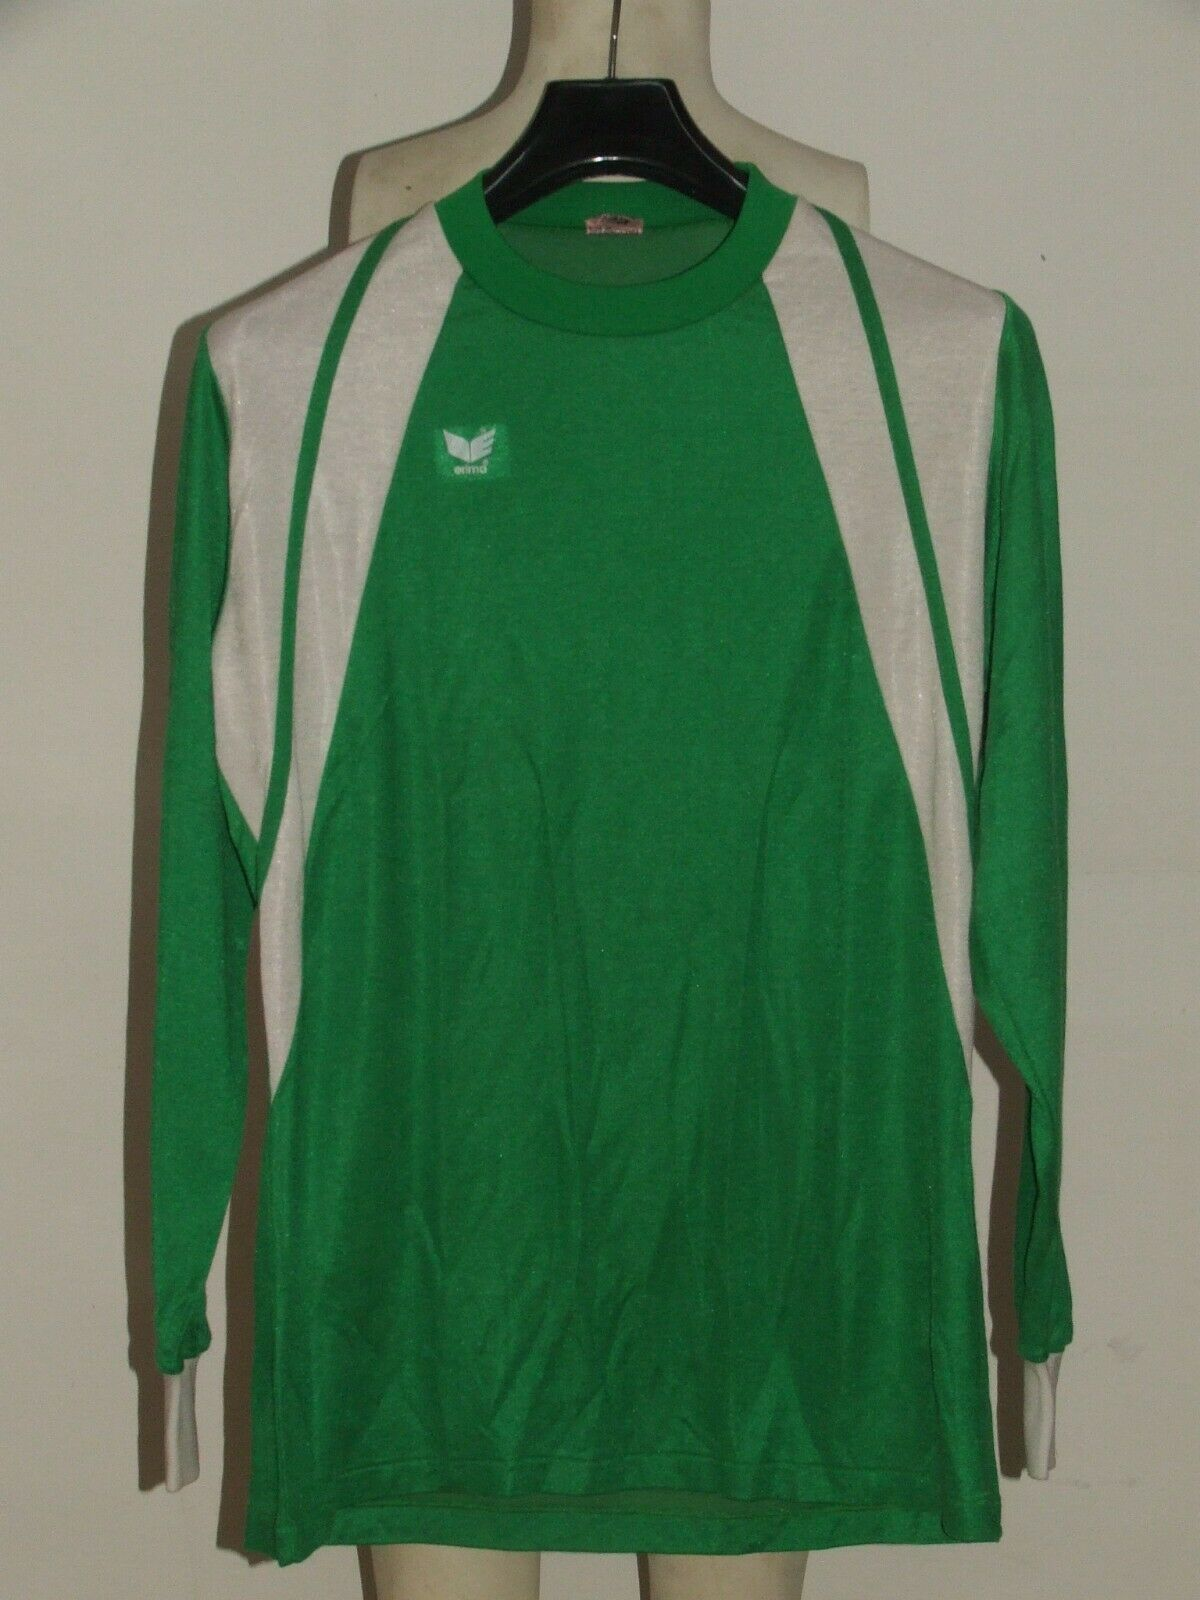 SOCCER JERSEY MADE IN WEST GERMANY VINTAGE ERIMA 80's (042) size 7 8